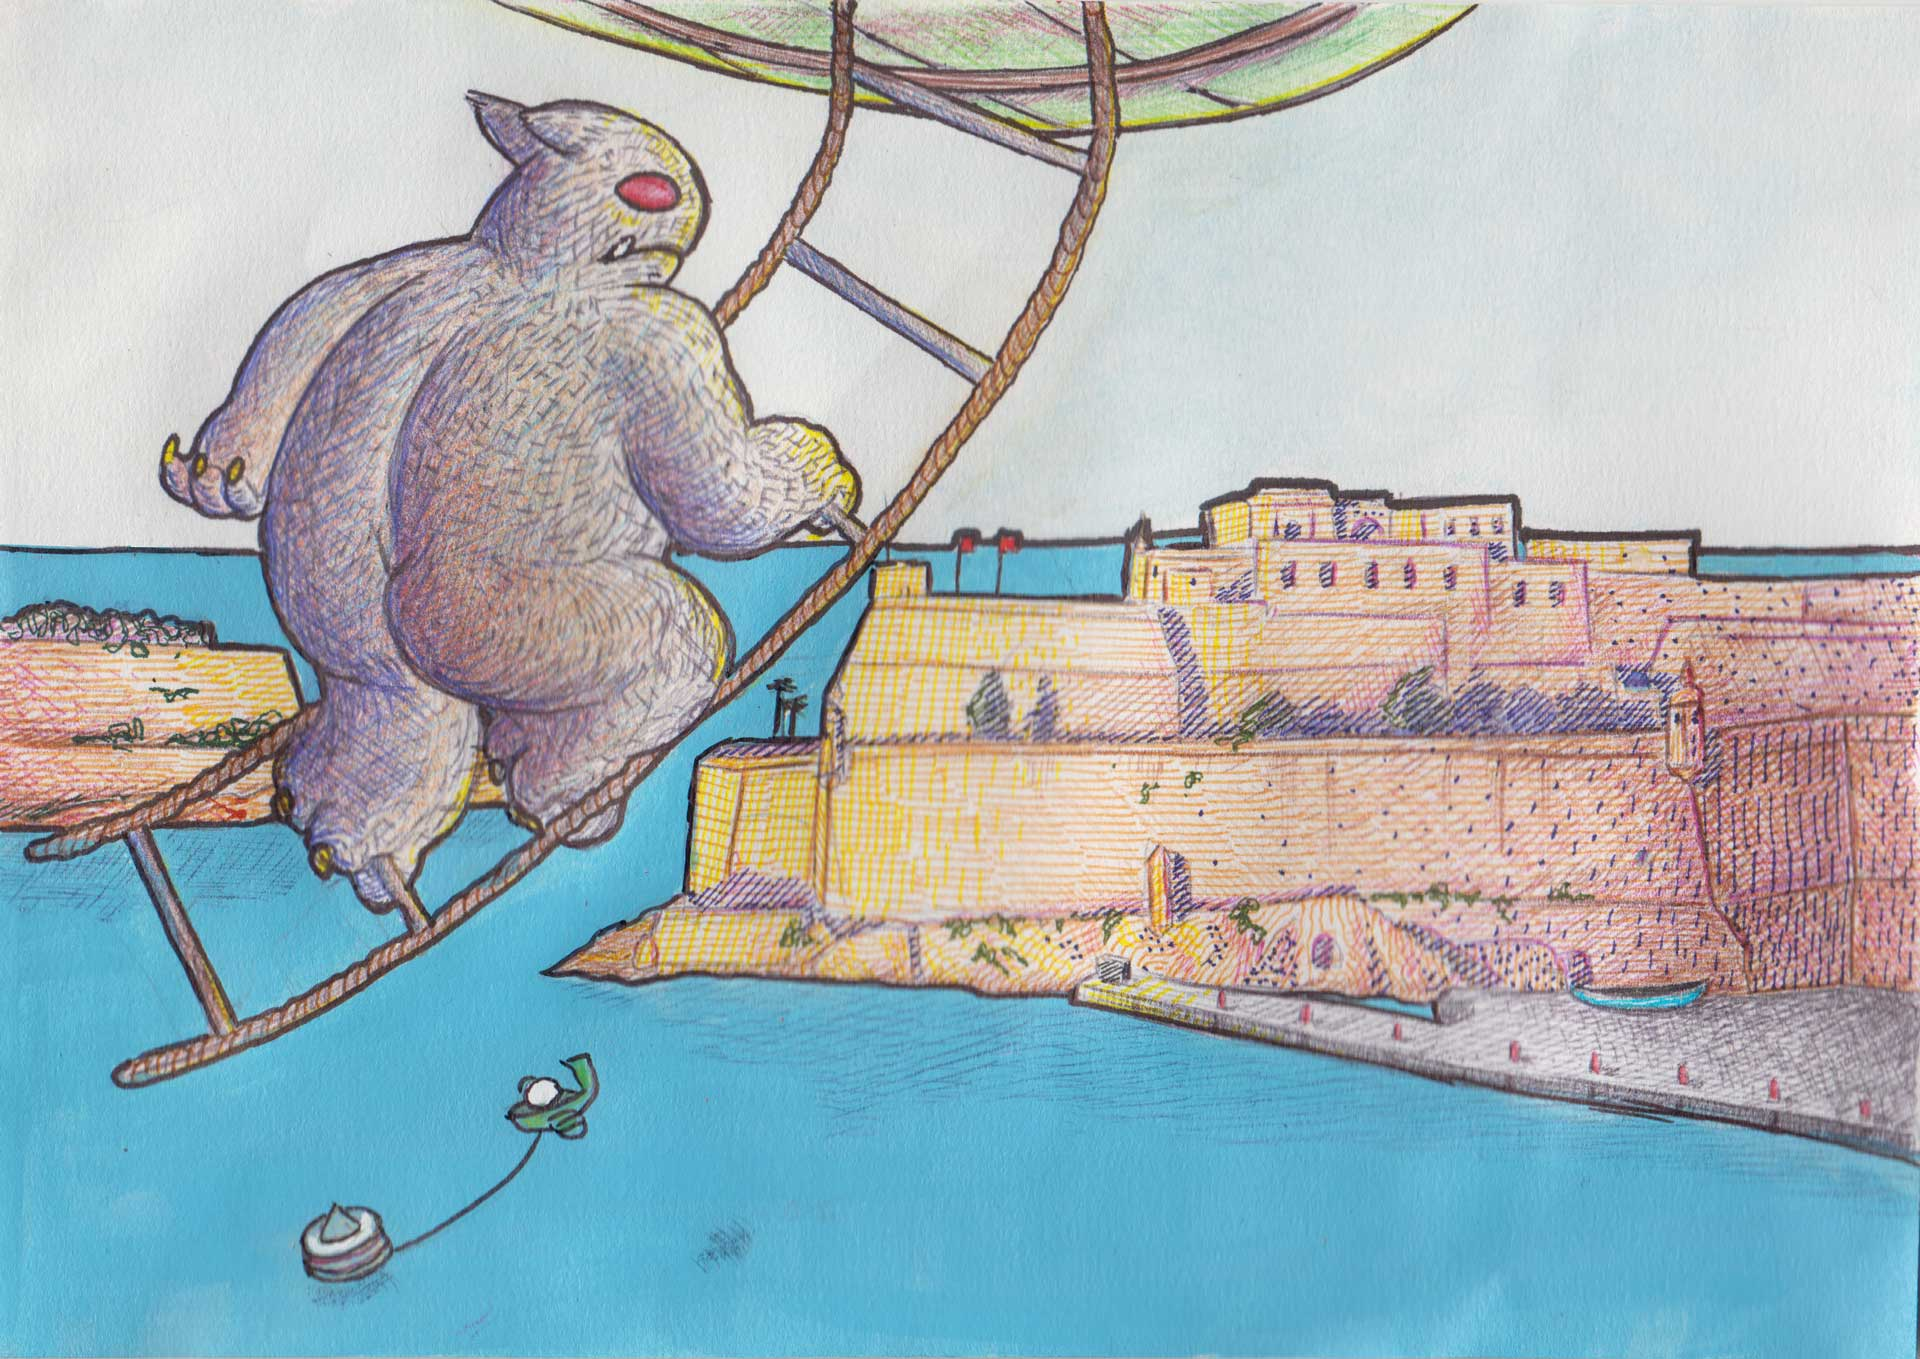 Alien in fort sant'angelo, birgu, Mixed media on paper by Alessandro Bruno